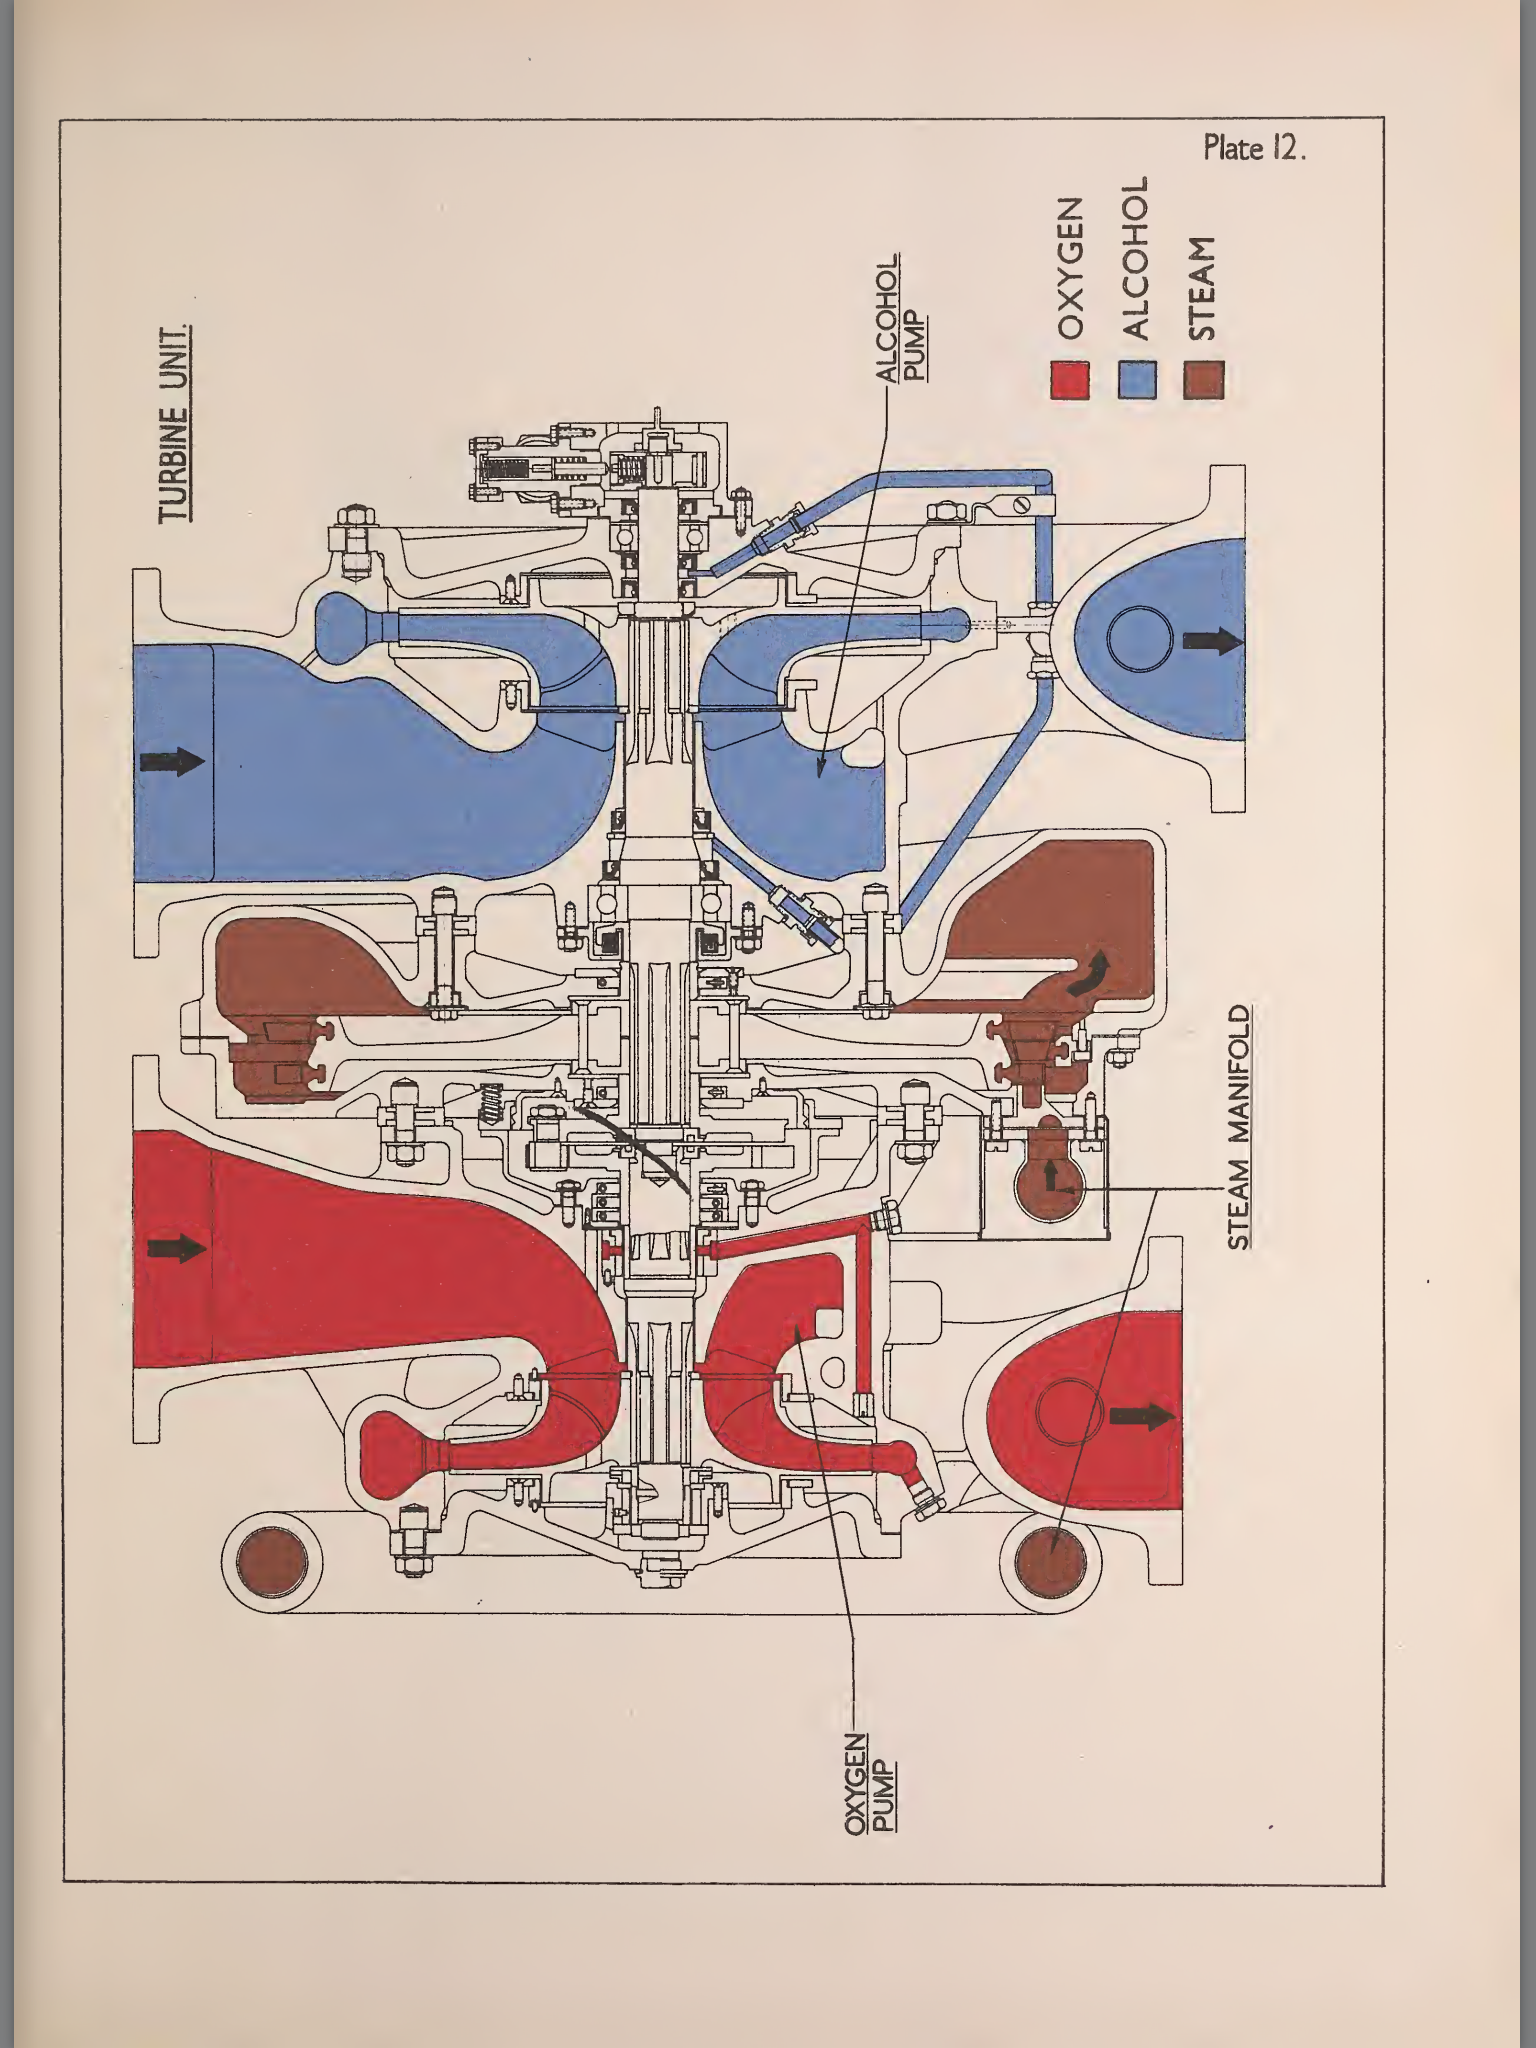 v 2 rocket turbopump diagram rocket engine jet engine gas turbine aerospace [ 1536 x 2048 Pixel ]